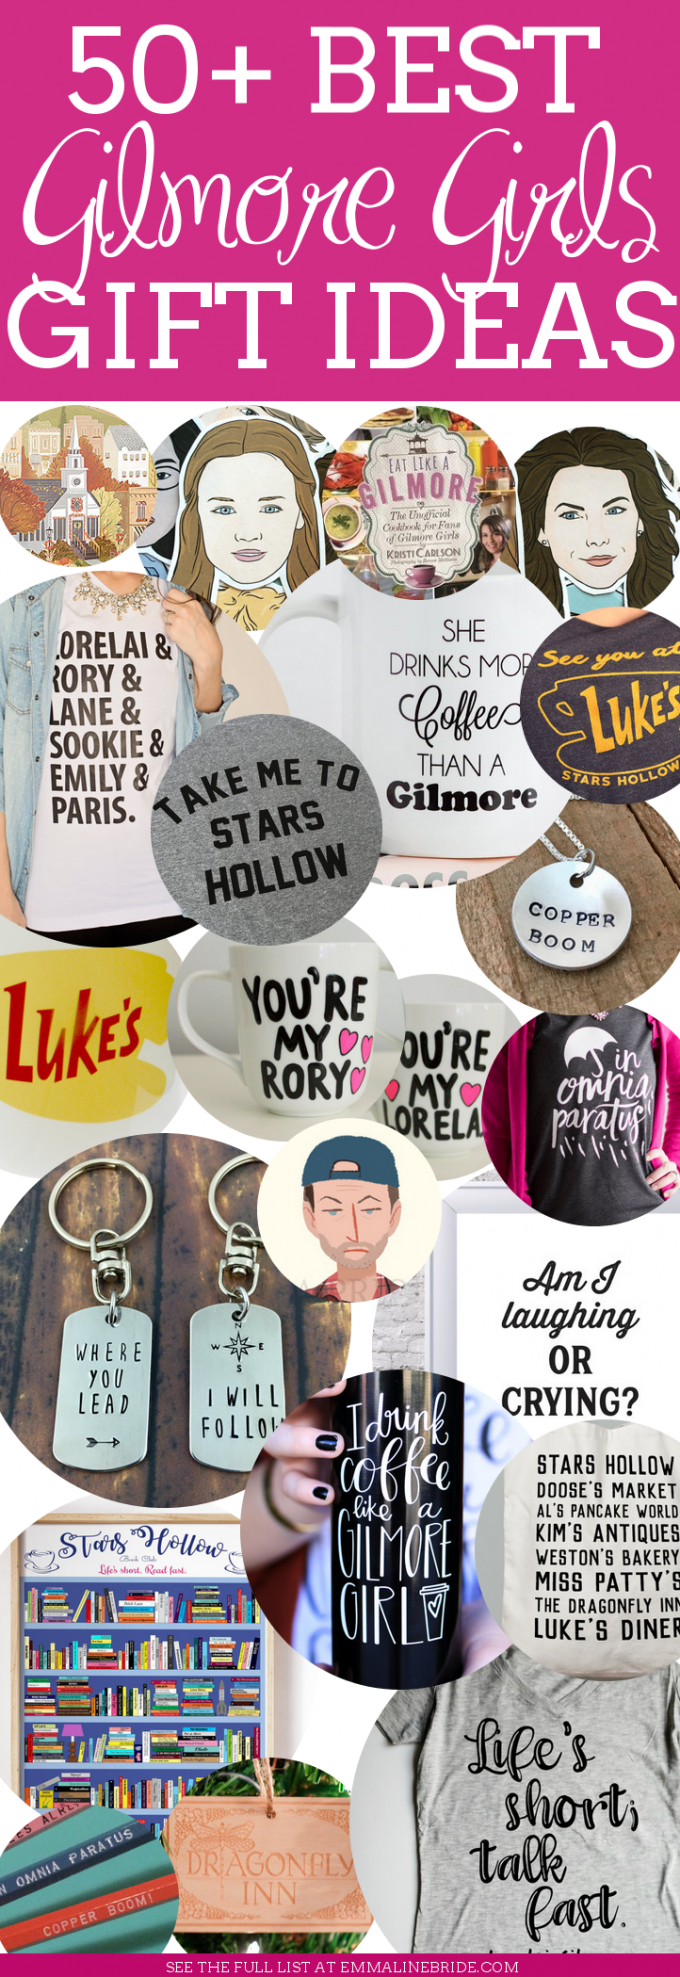 50+ Best Gilmore Girls Gifts | https://emmalinebride.com/gifts/50-best-gilmore-girls-gift-ideas